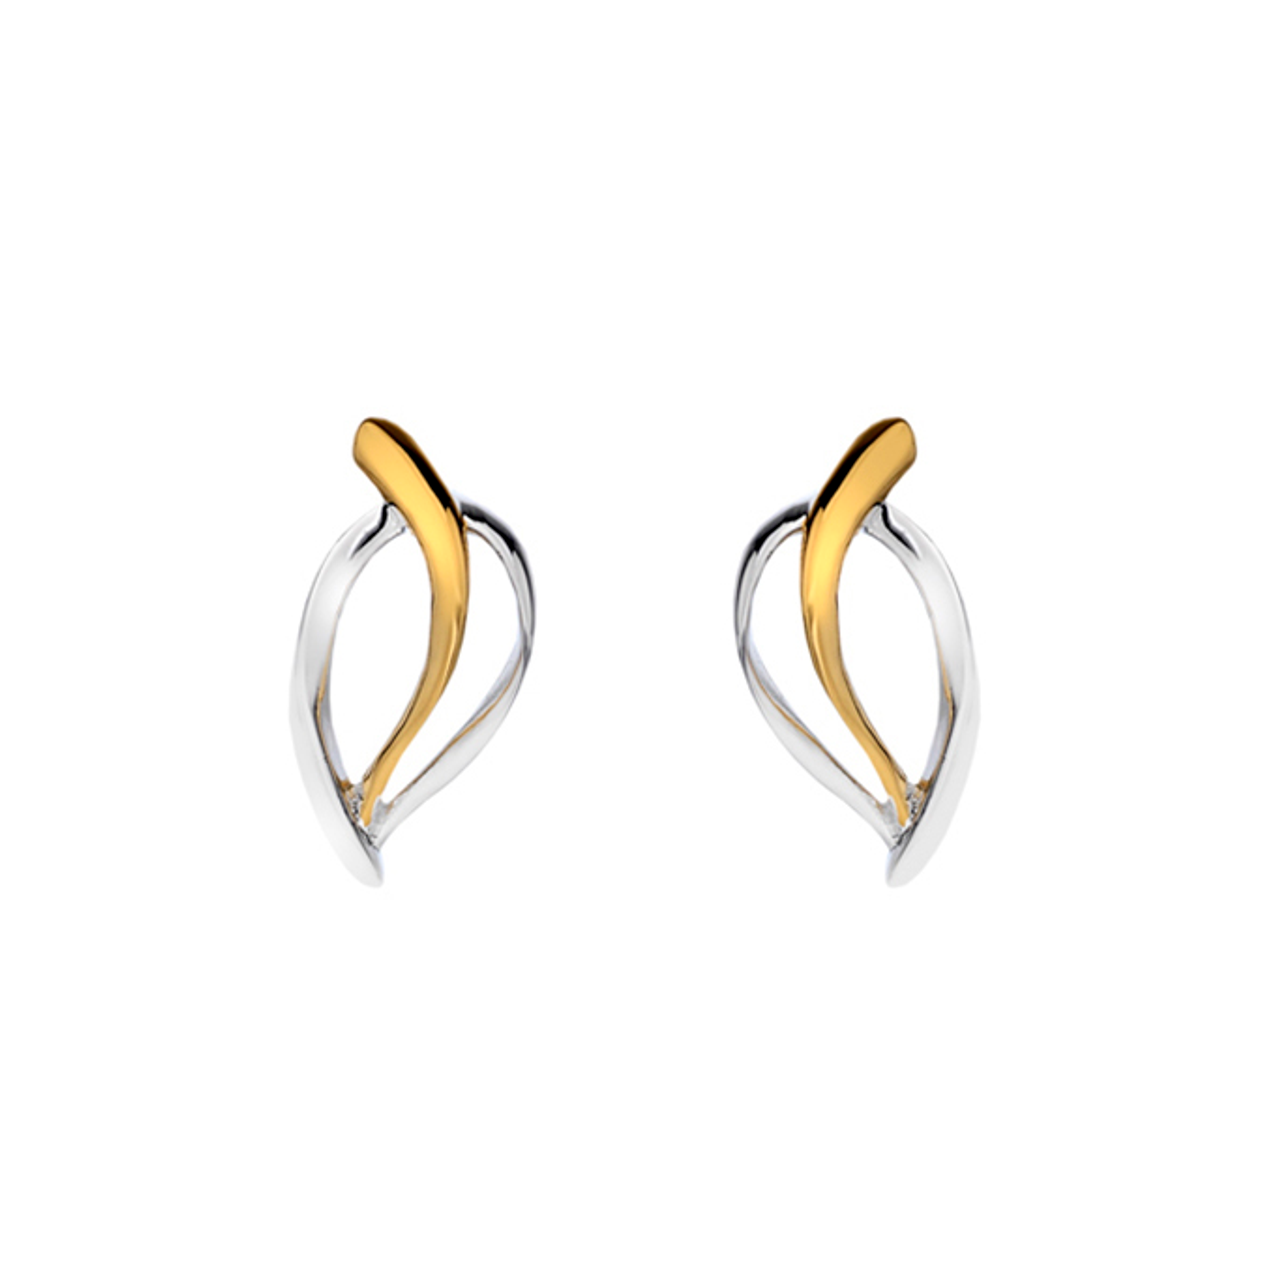 Silver & Gold plated Leaf Stud Earrings